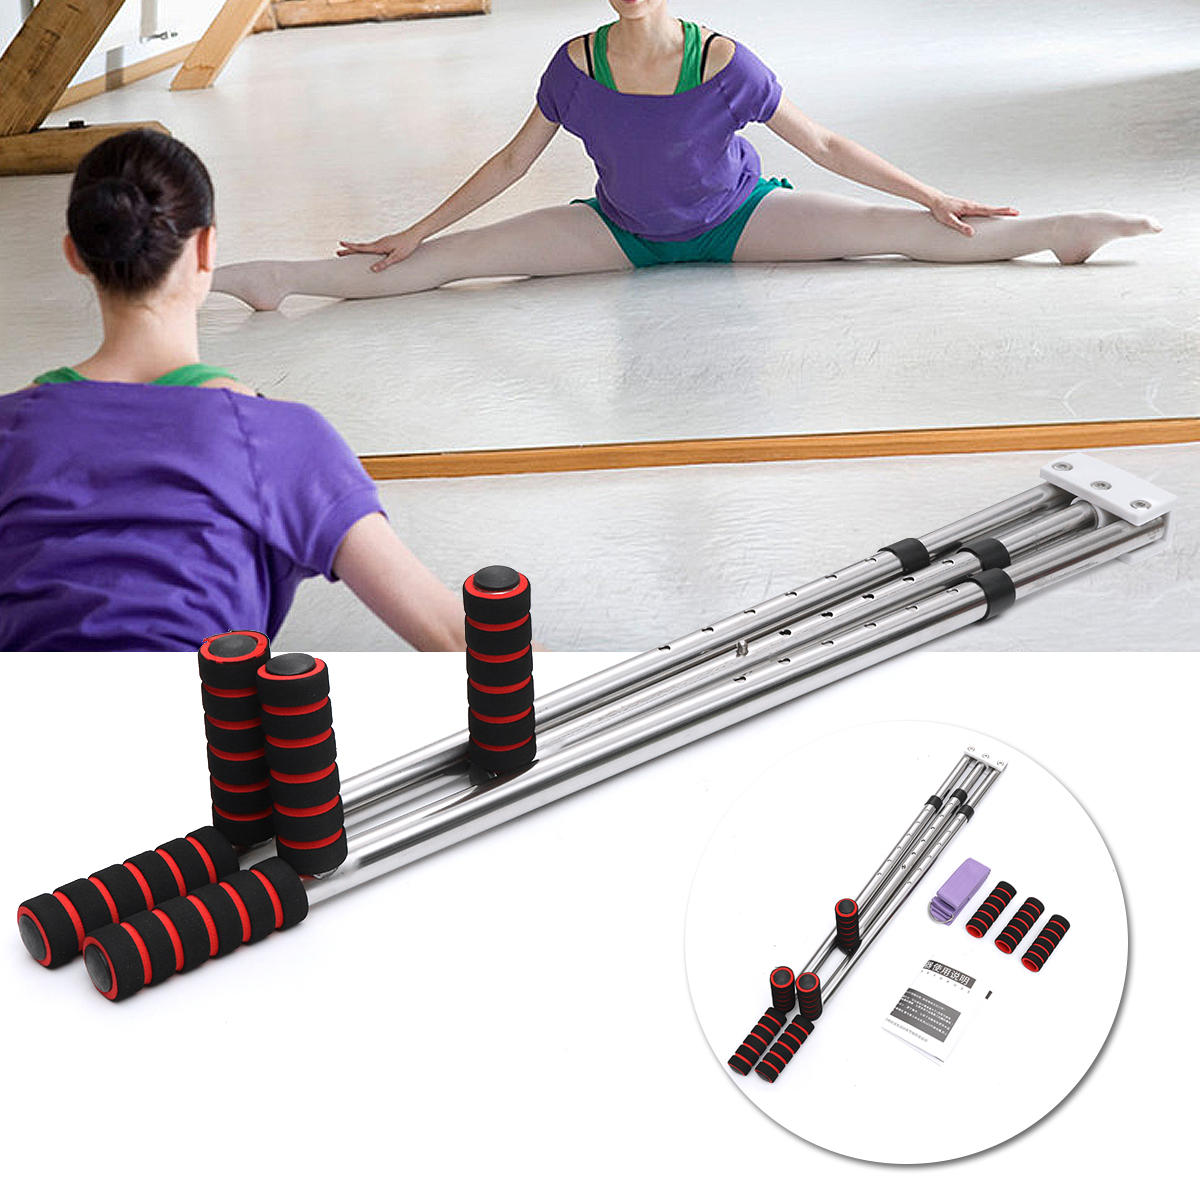 Leg Stretcher Heavy Duty Leg Stretching Training Machine Improve Flexibility USA